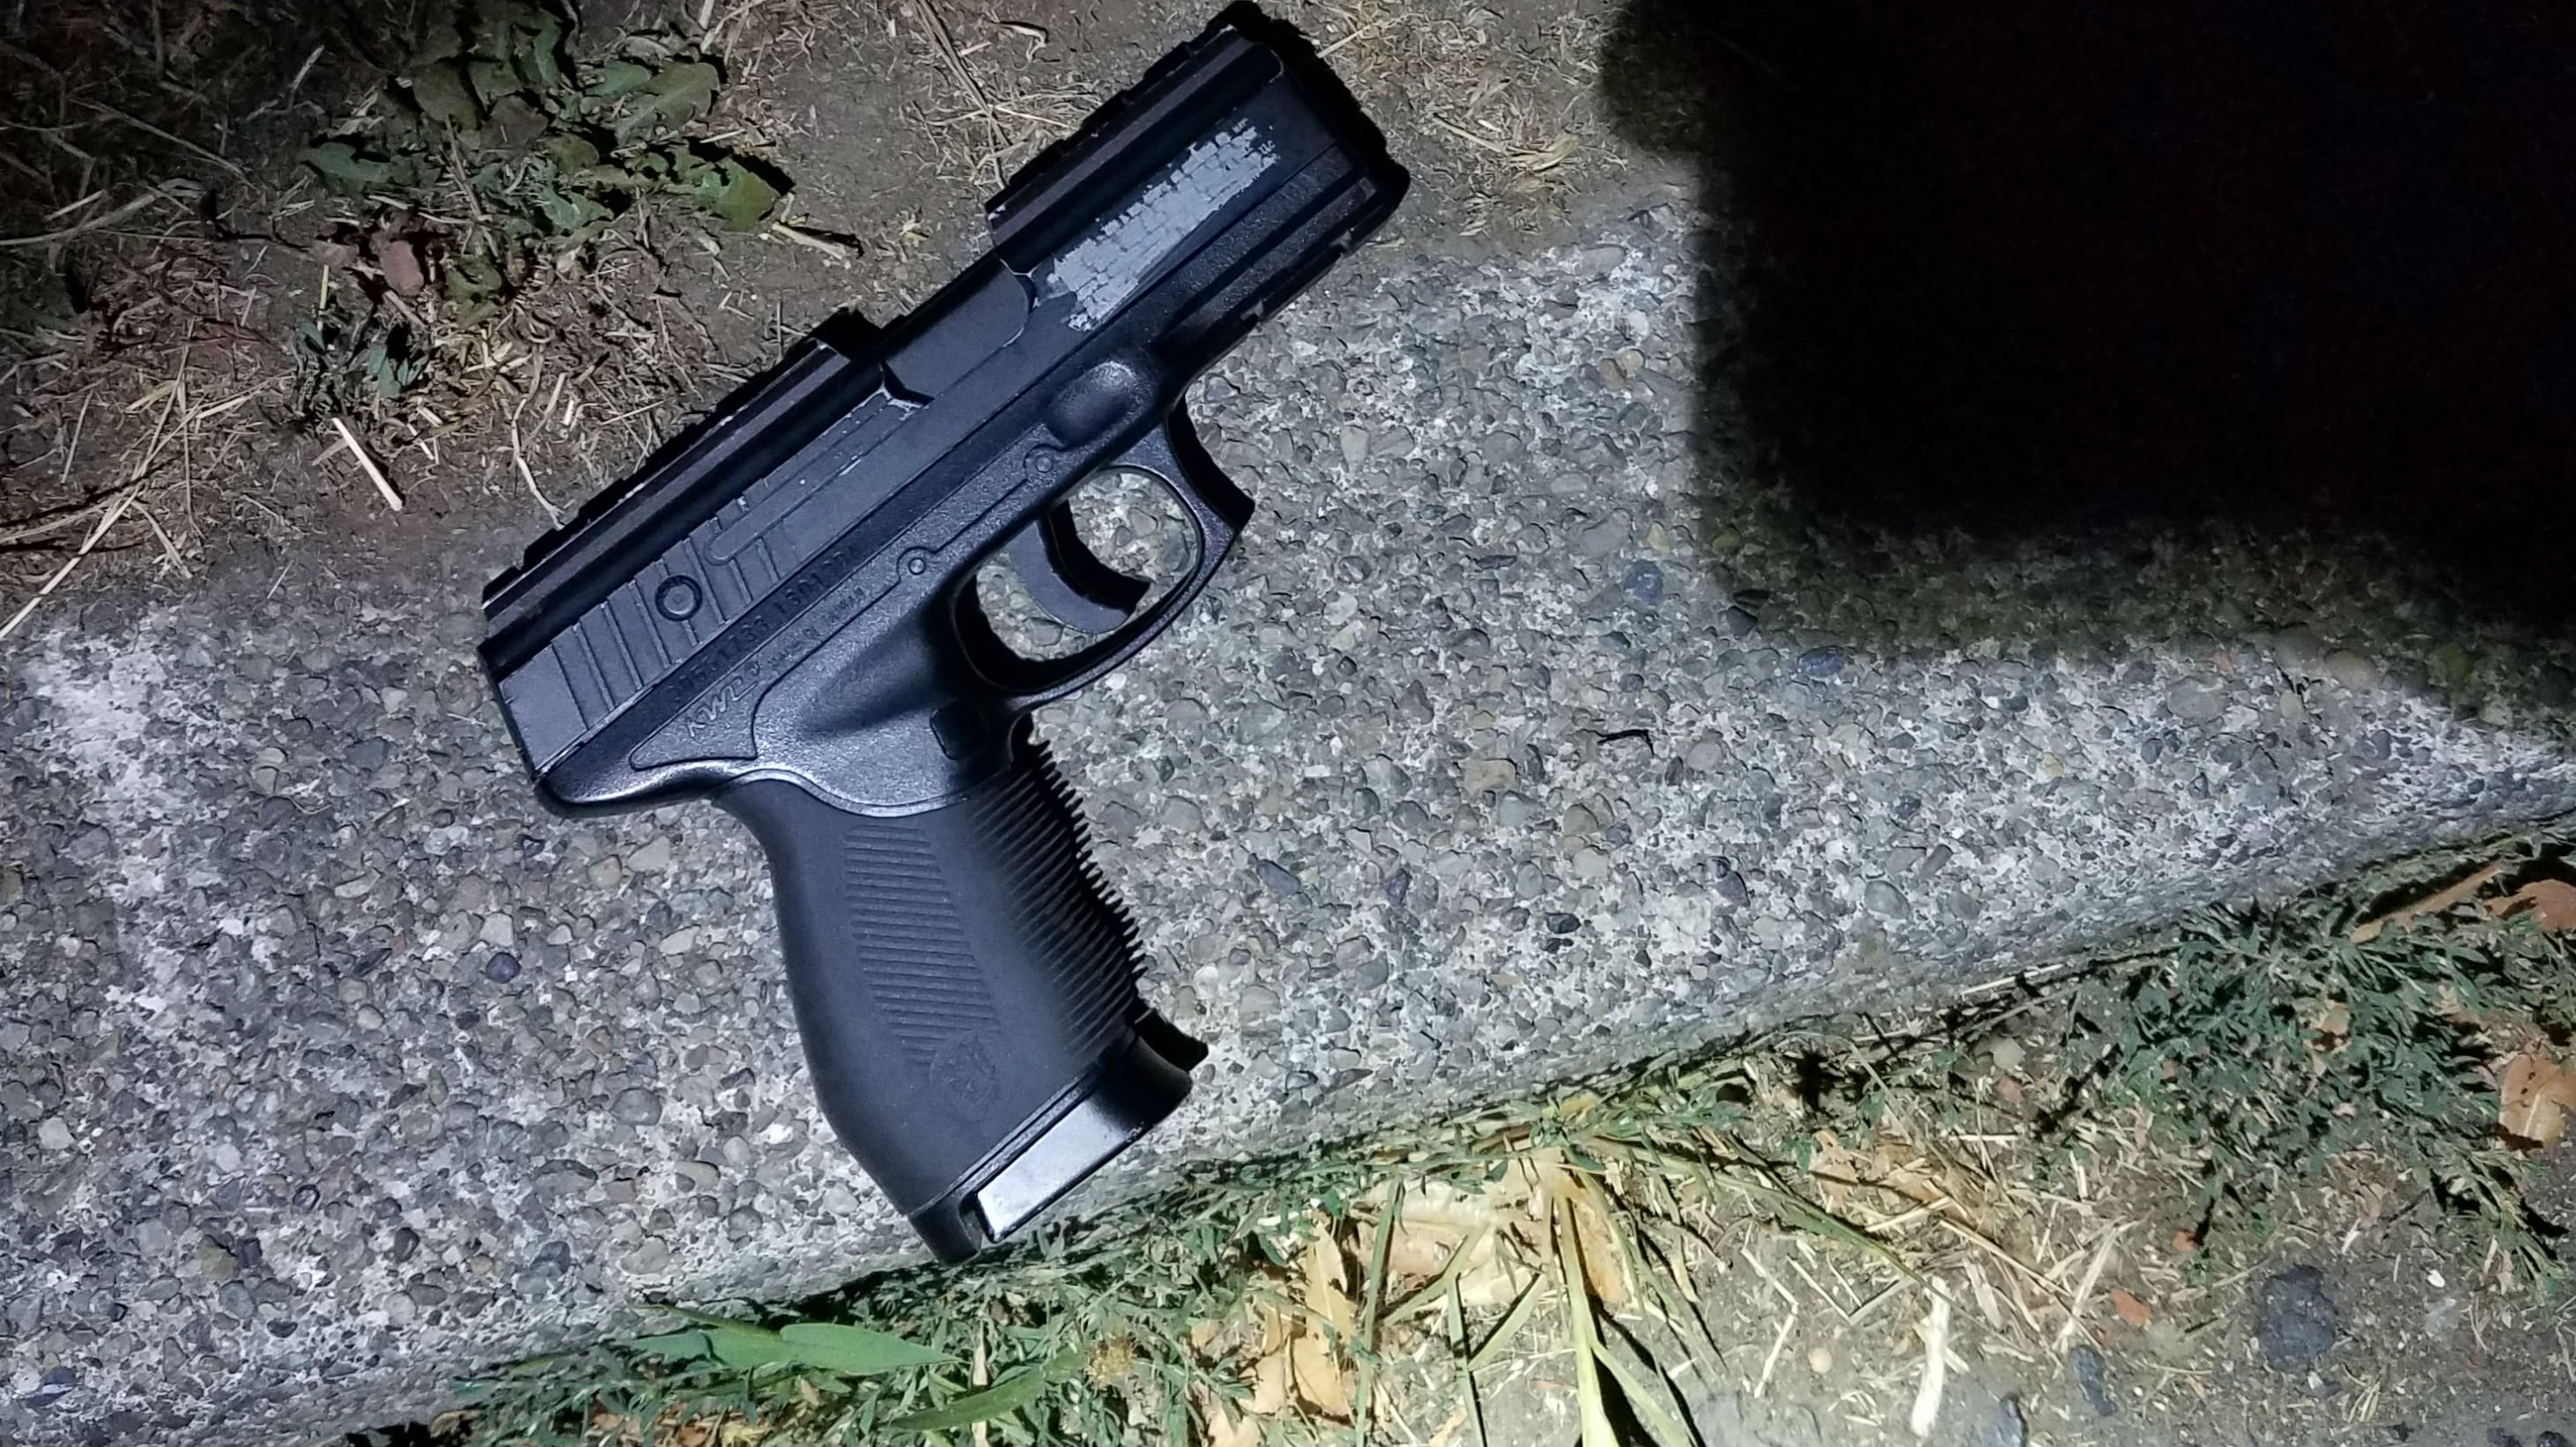 The realistic-looking replica gun found at the scene